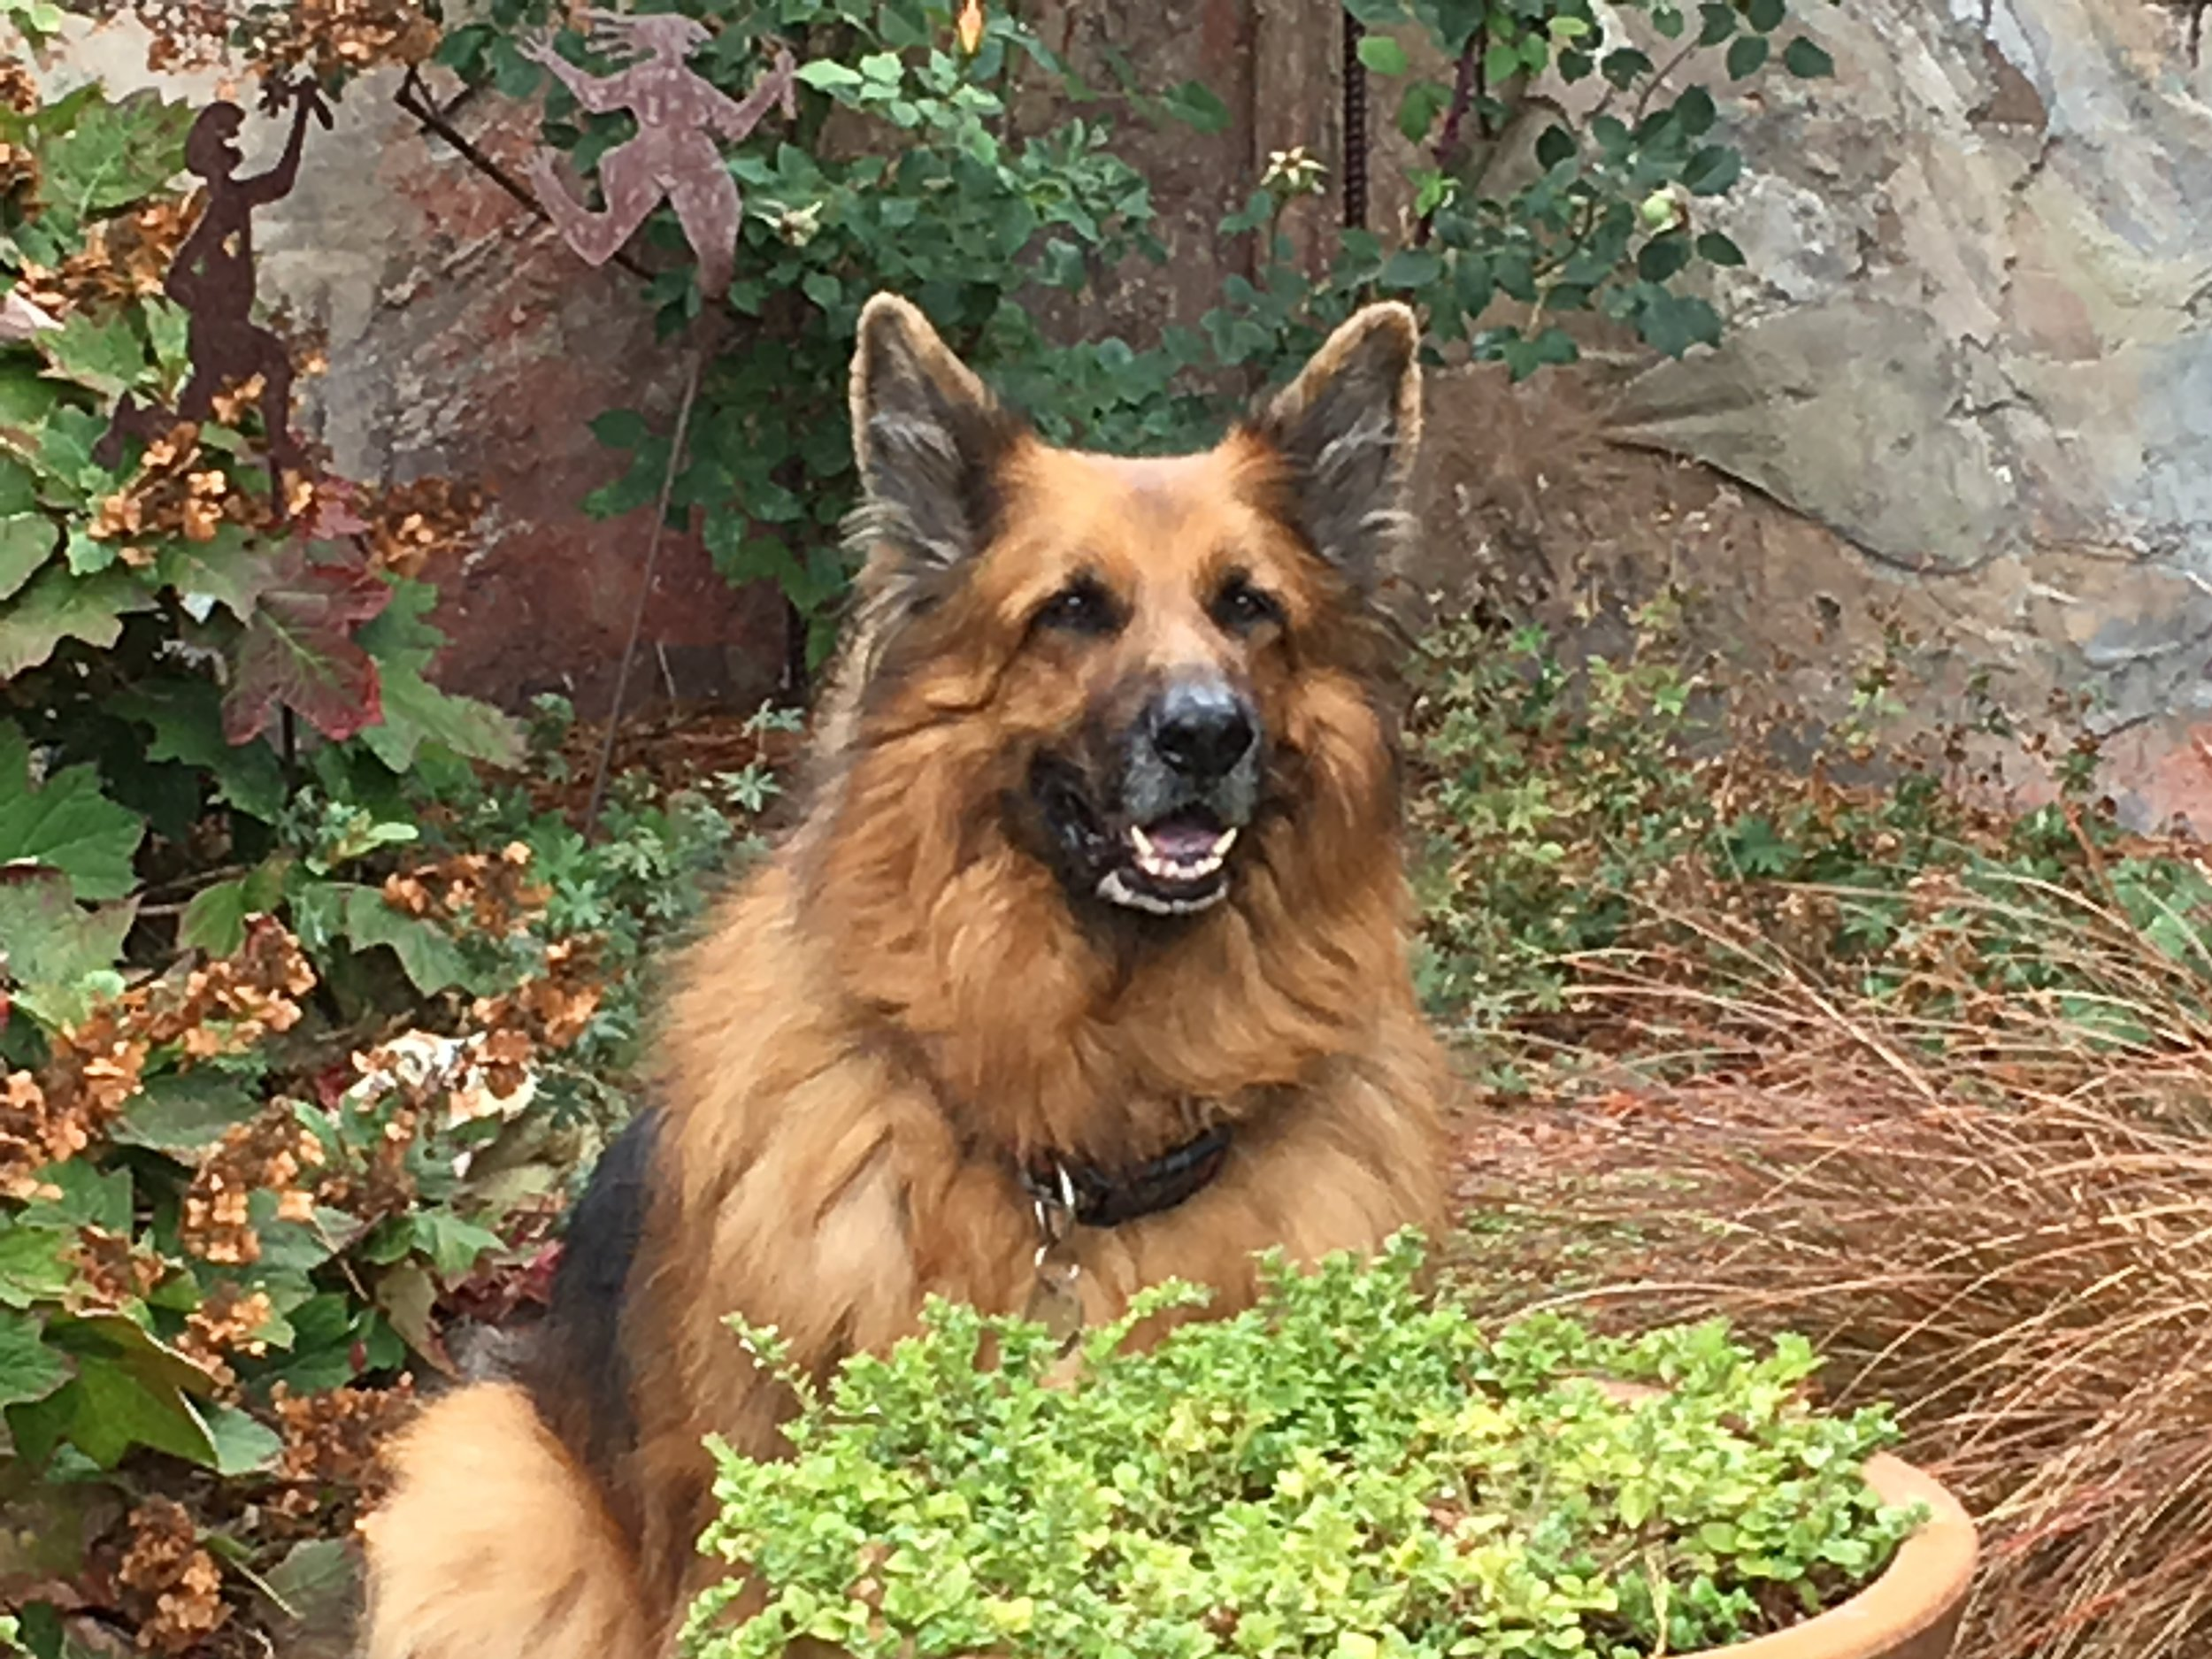 Rescue dog Anson loves his forever home and garden. ( Photo: Ed Reed )